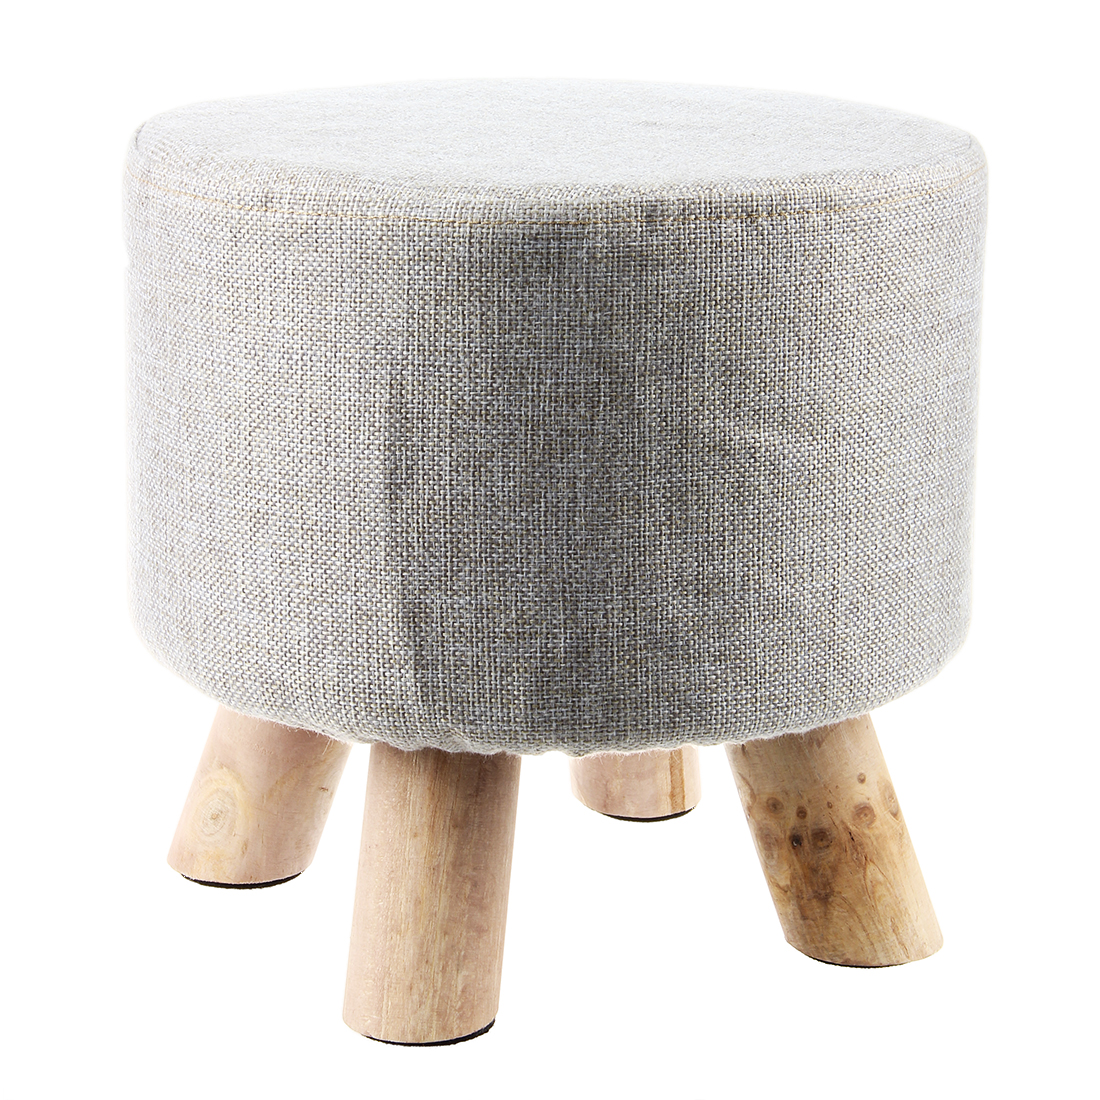 Best Modern Luxury Upholstered Footstool Round Pouffe Stool + Wooden Leg Pattern:Round Fabric:Grey(4 Legs)Best Modern Luxury Upholstered Footstool Round Pouffe Stool + Wooden Leg Pattern:Round Fabric:Grey(4 Legs)